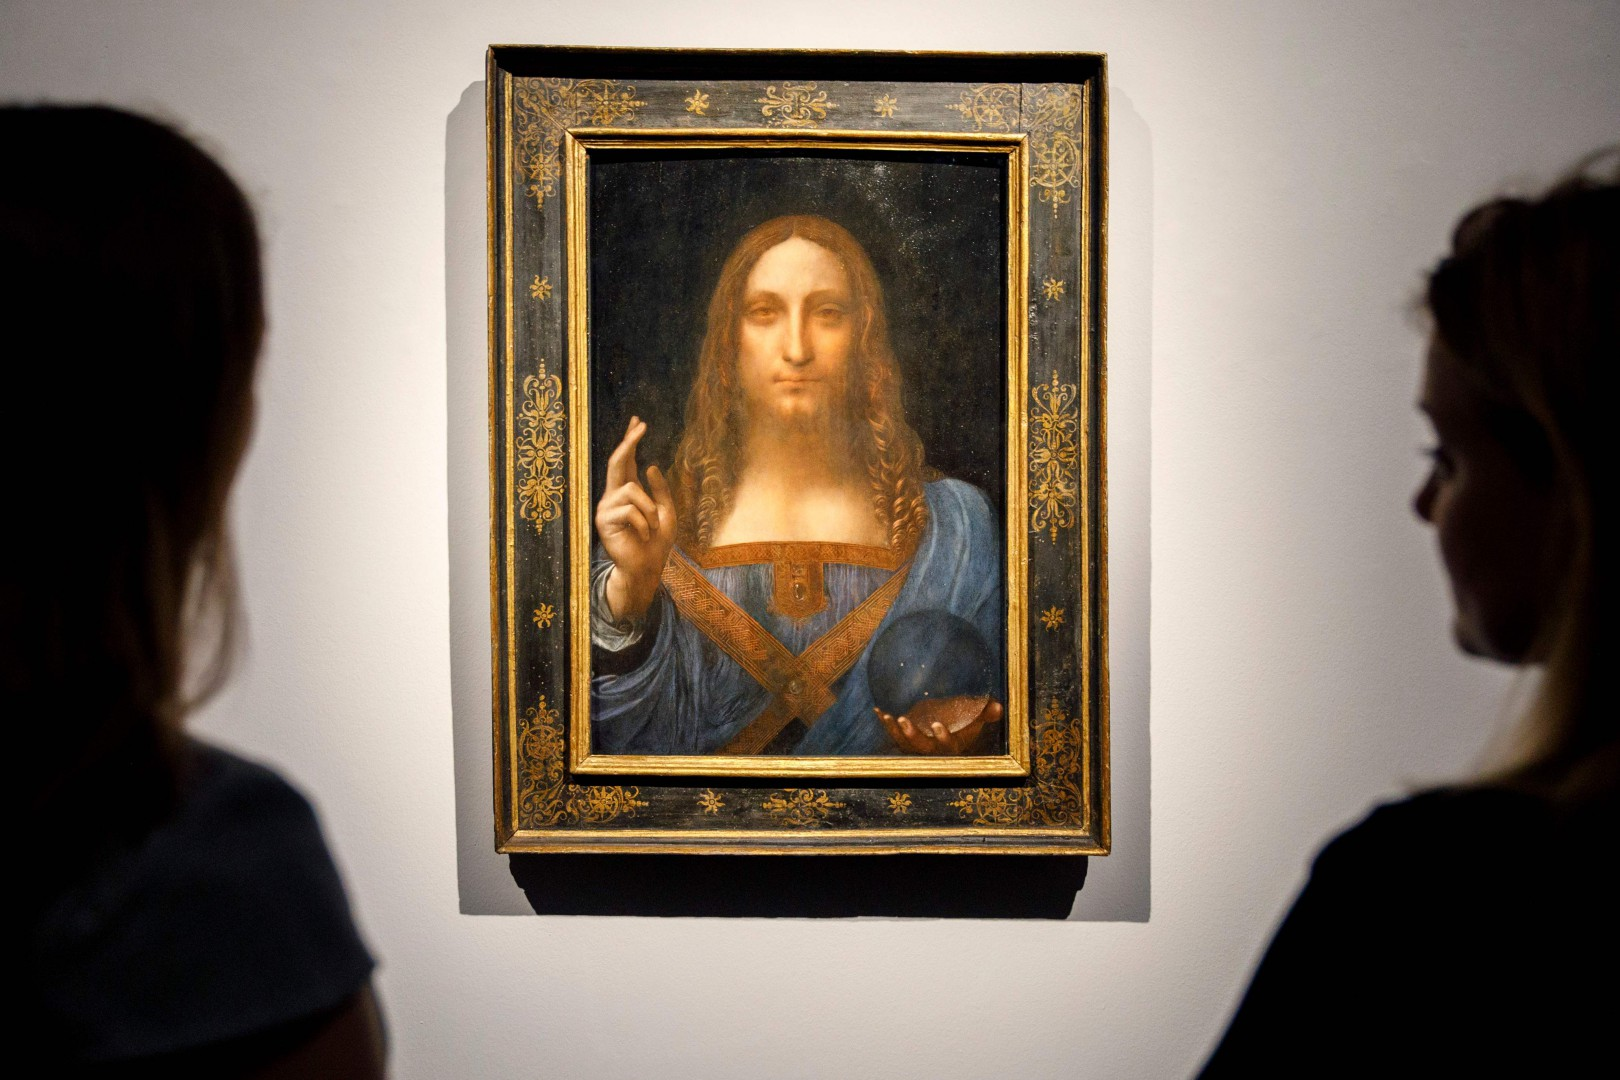 "(FILES) In this file photo taken on October 24, 2017 Christie's employees pose in front of a painting entitled Salvator Mundi by Italian polymath Leonardo da Vinci at a photocall at Christie's auction house in central London. The Louvre Abu Dhabi said on June 27, 2018 it will unveil its most prized acquisition to date, a Leonardo da Vinci painting that sold for nearly half a billion dollars at auction, on September 18. The 500-year-old ""Salvator Mundi"" painting depicting Jesus Christ, believed to be the work of the Renaissance master's own hand, set a new art auction record when it sold for $450.3 million in November 2017.  / AFP PHOTO / Tolga Akmen / RESTRICTED TO EDITORIAL USE - MANDATORY MENTION OF THE ARTIST UPON PUBLICATION - TO ILLUSTRATE THE EVENT AS SPECIFIED IN THE CAPTION"